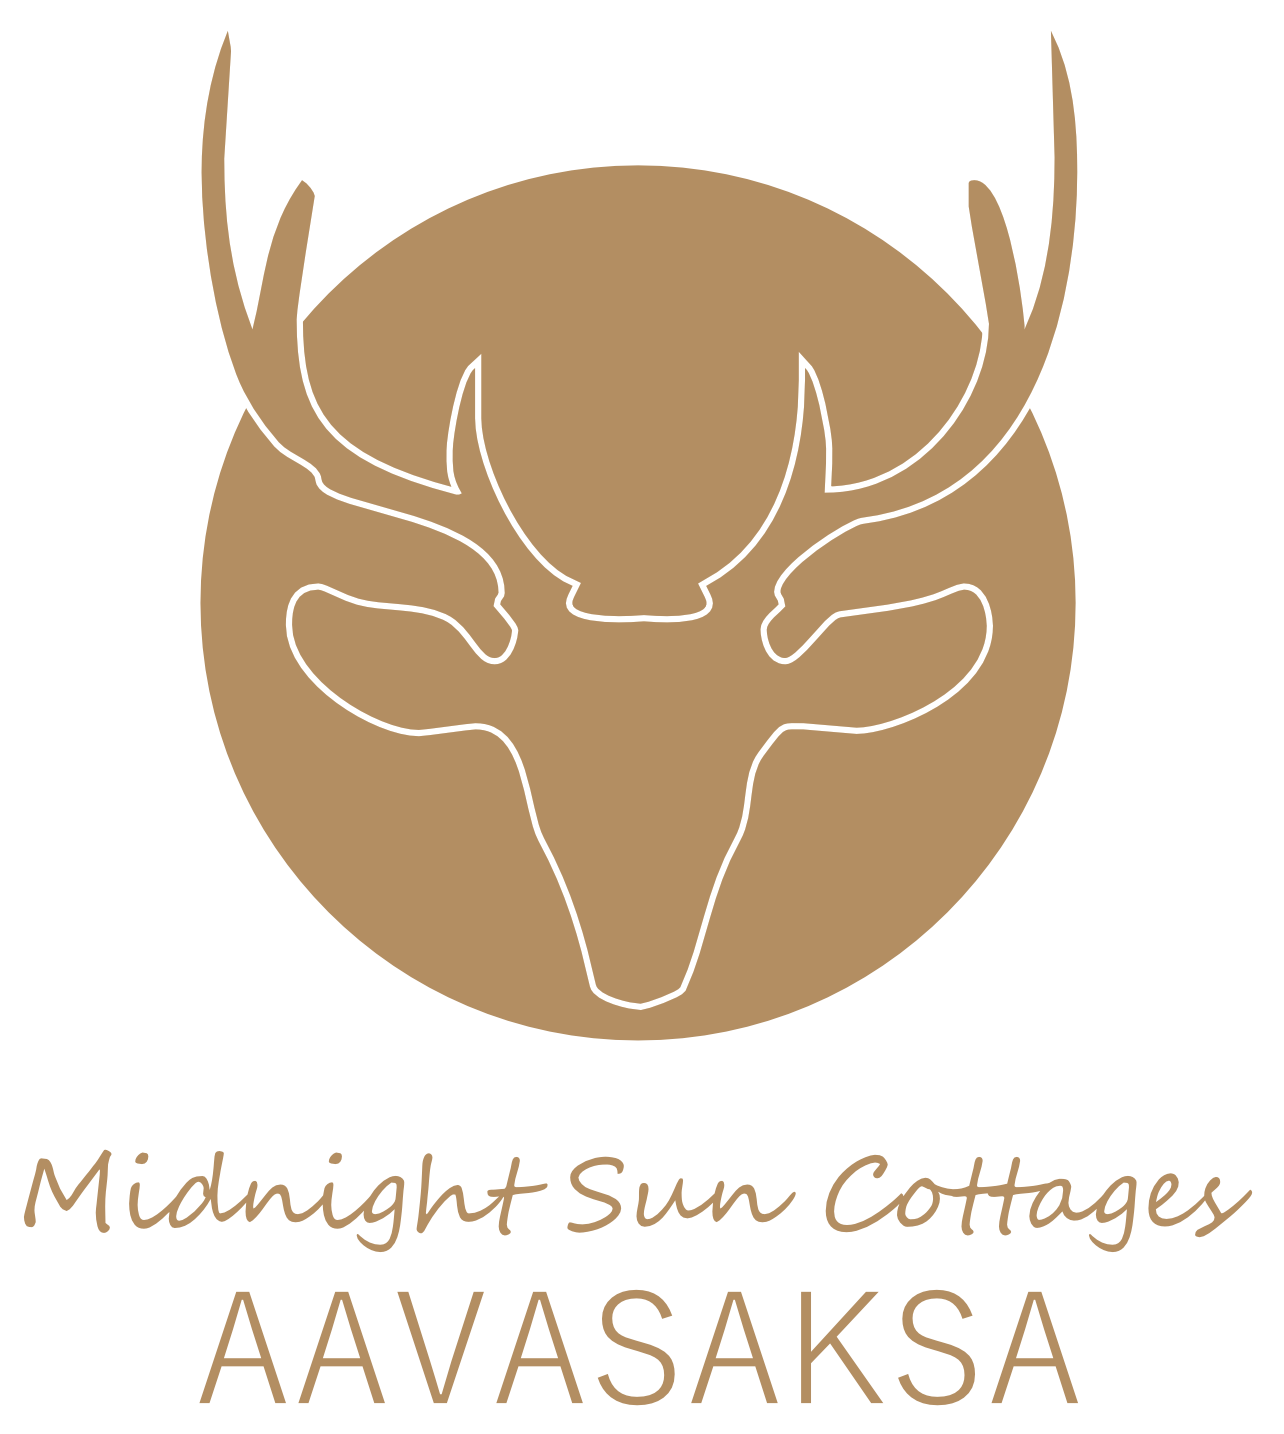 Midnight Sun Cottages Aavasaksa